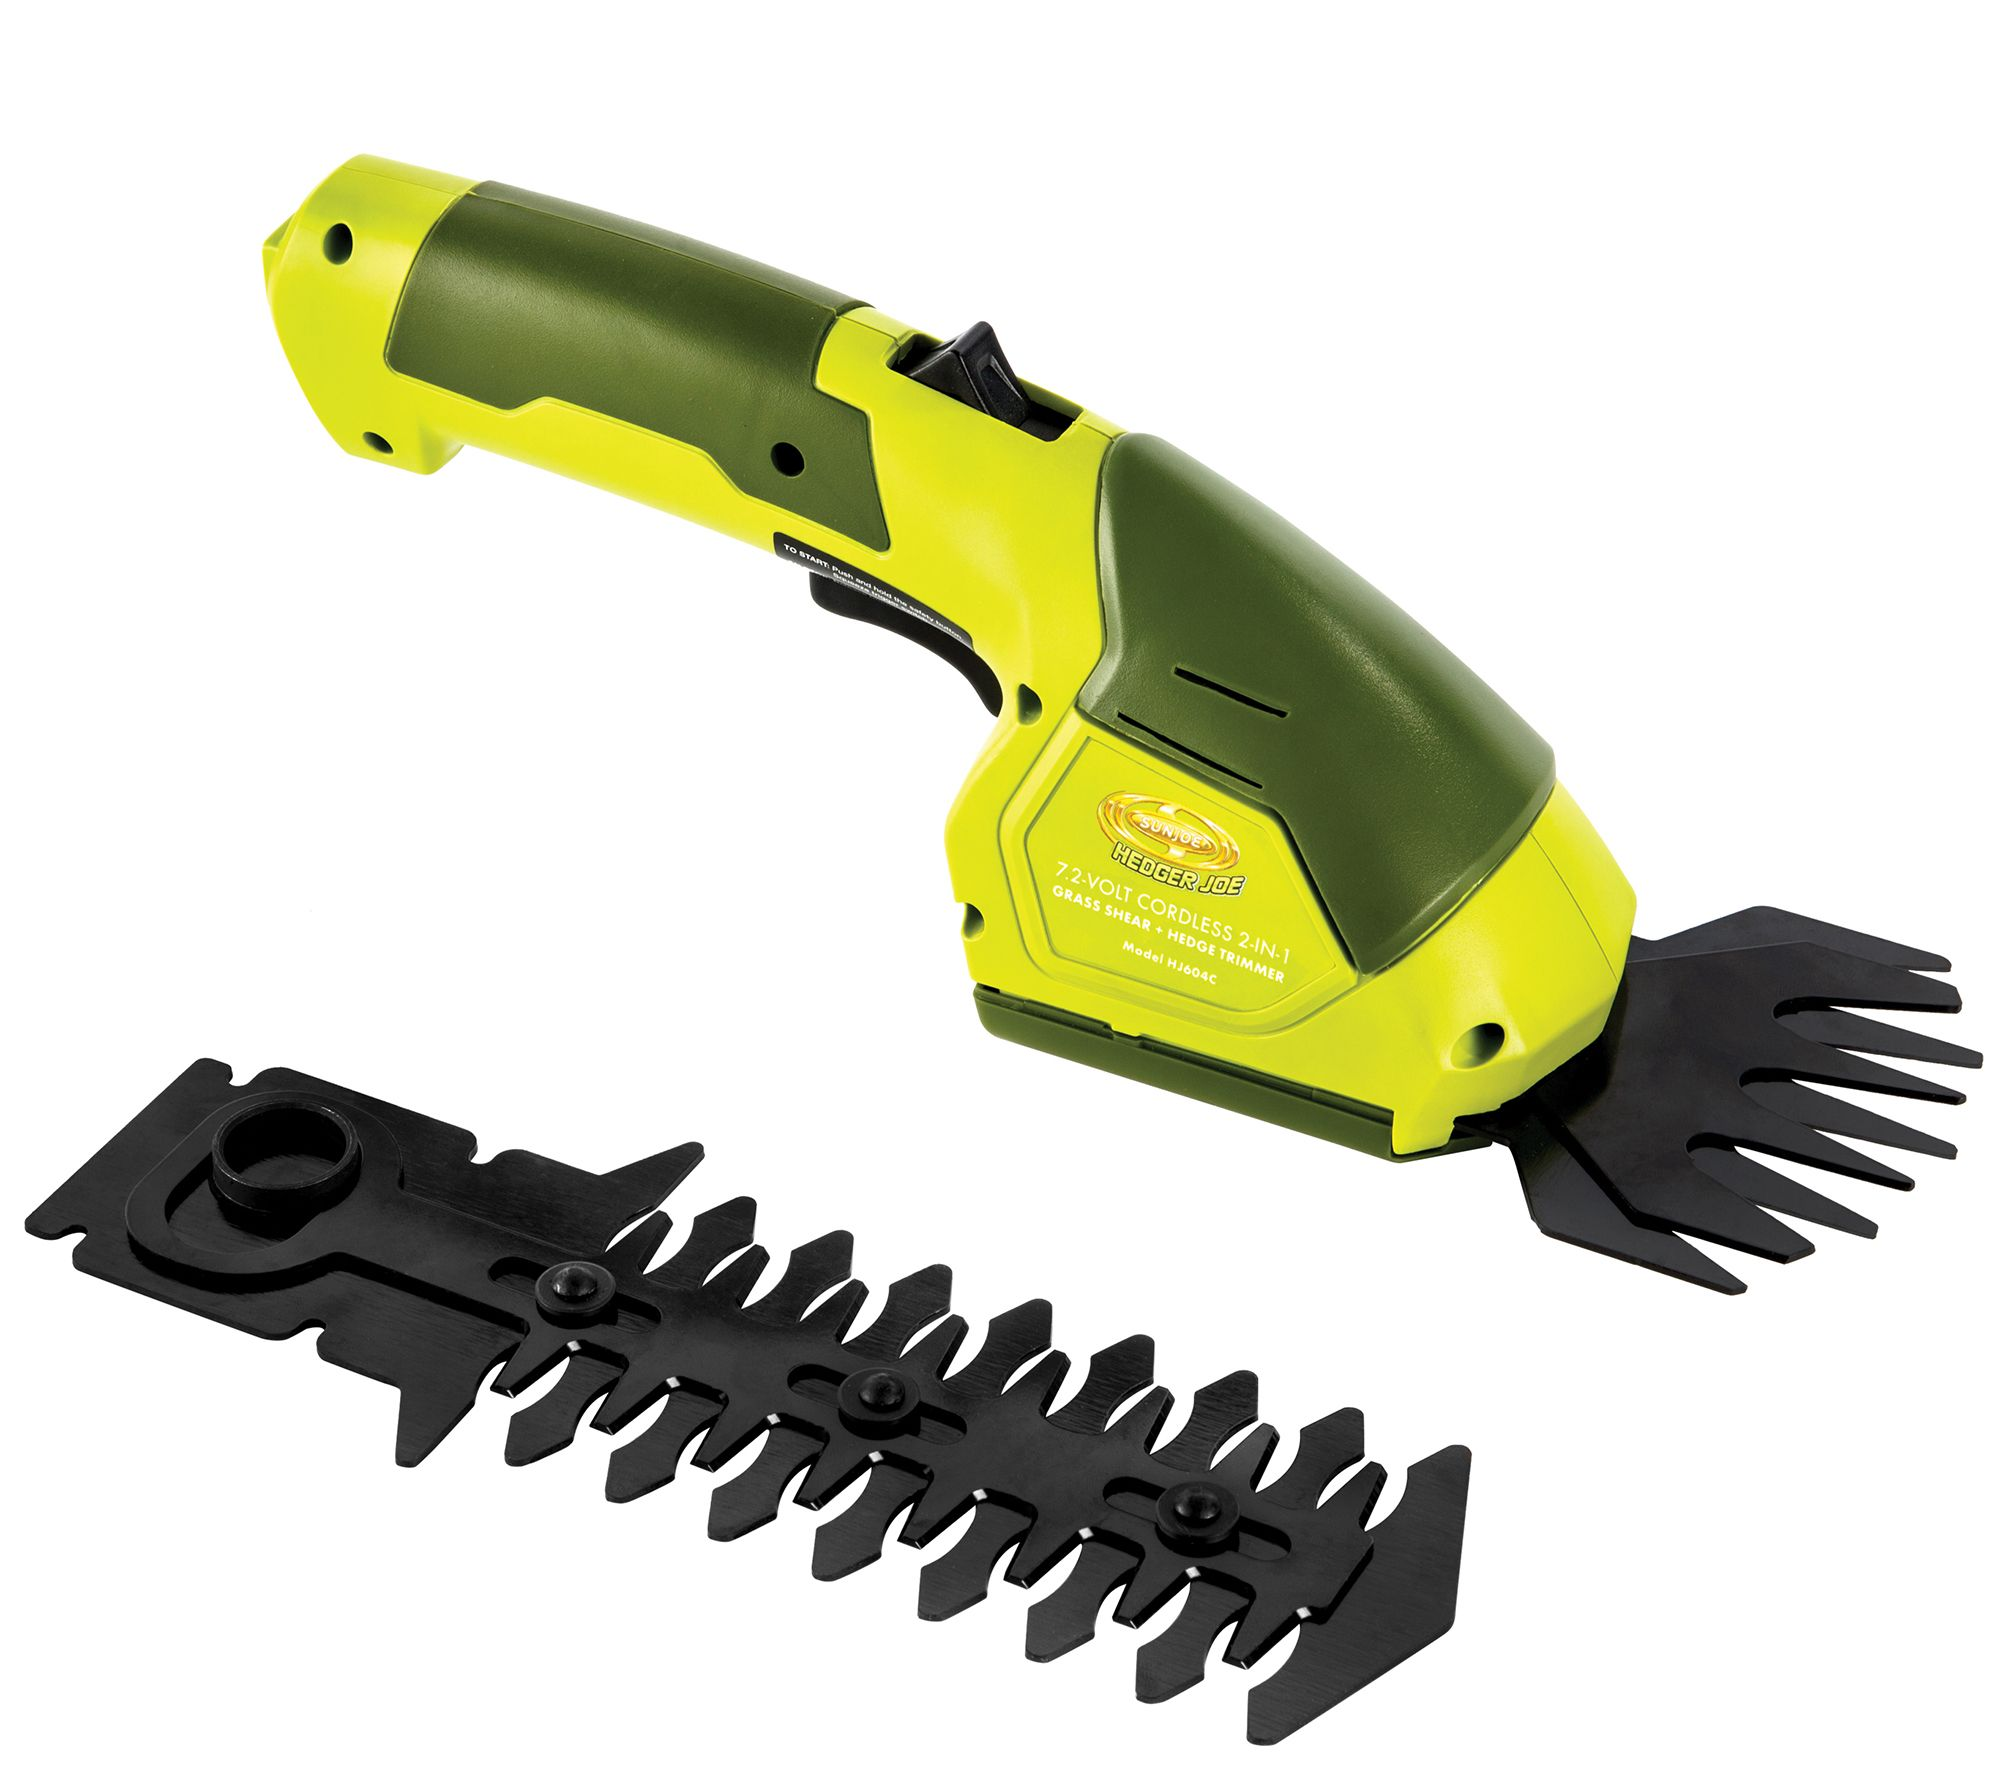 2-In-1 Garden Cordless Grass Shear /& Hedge Trimmer Hand Held gift present box